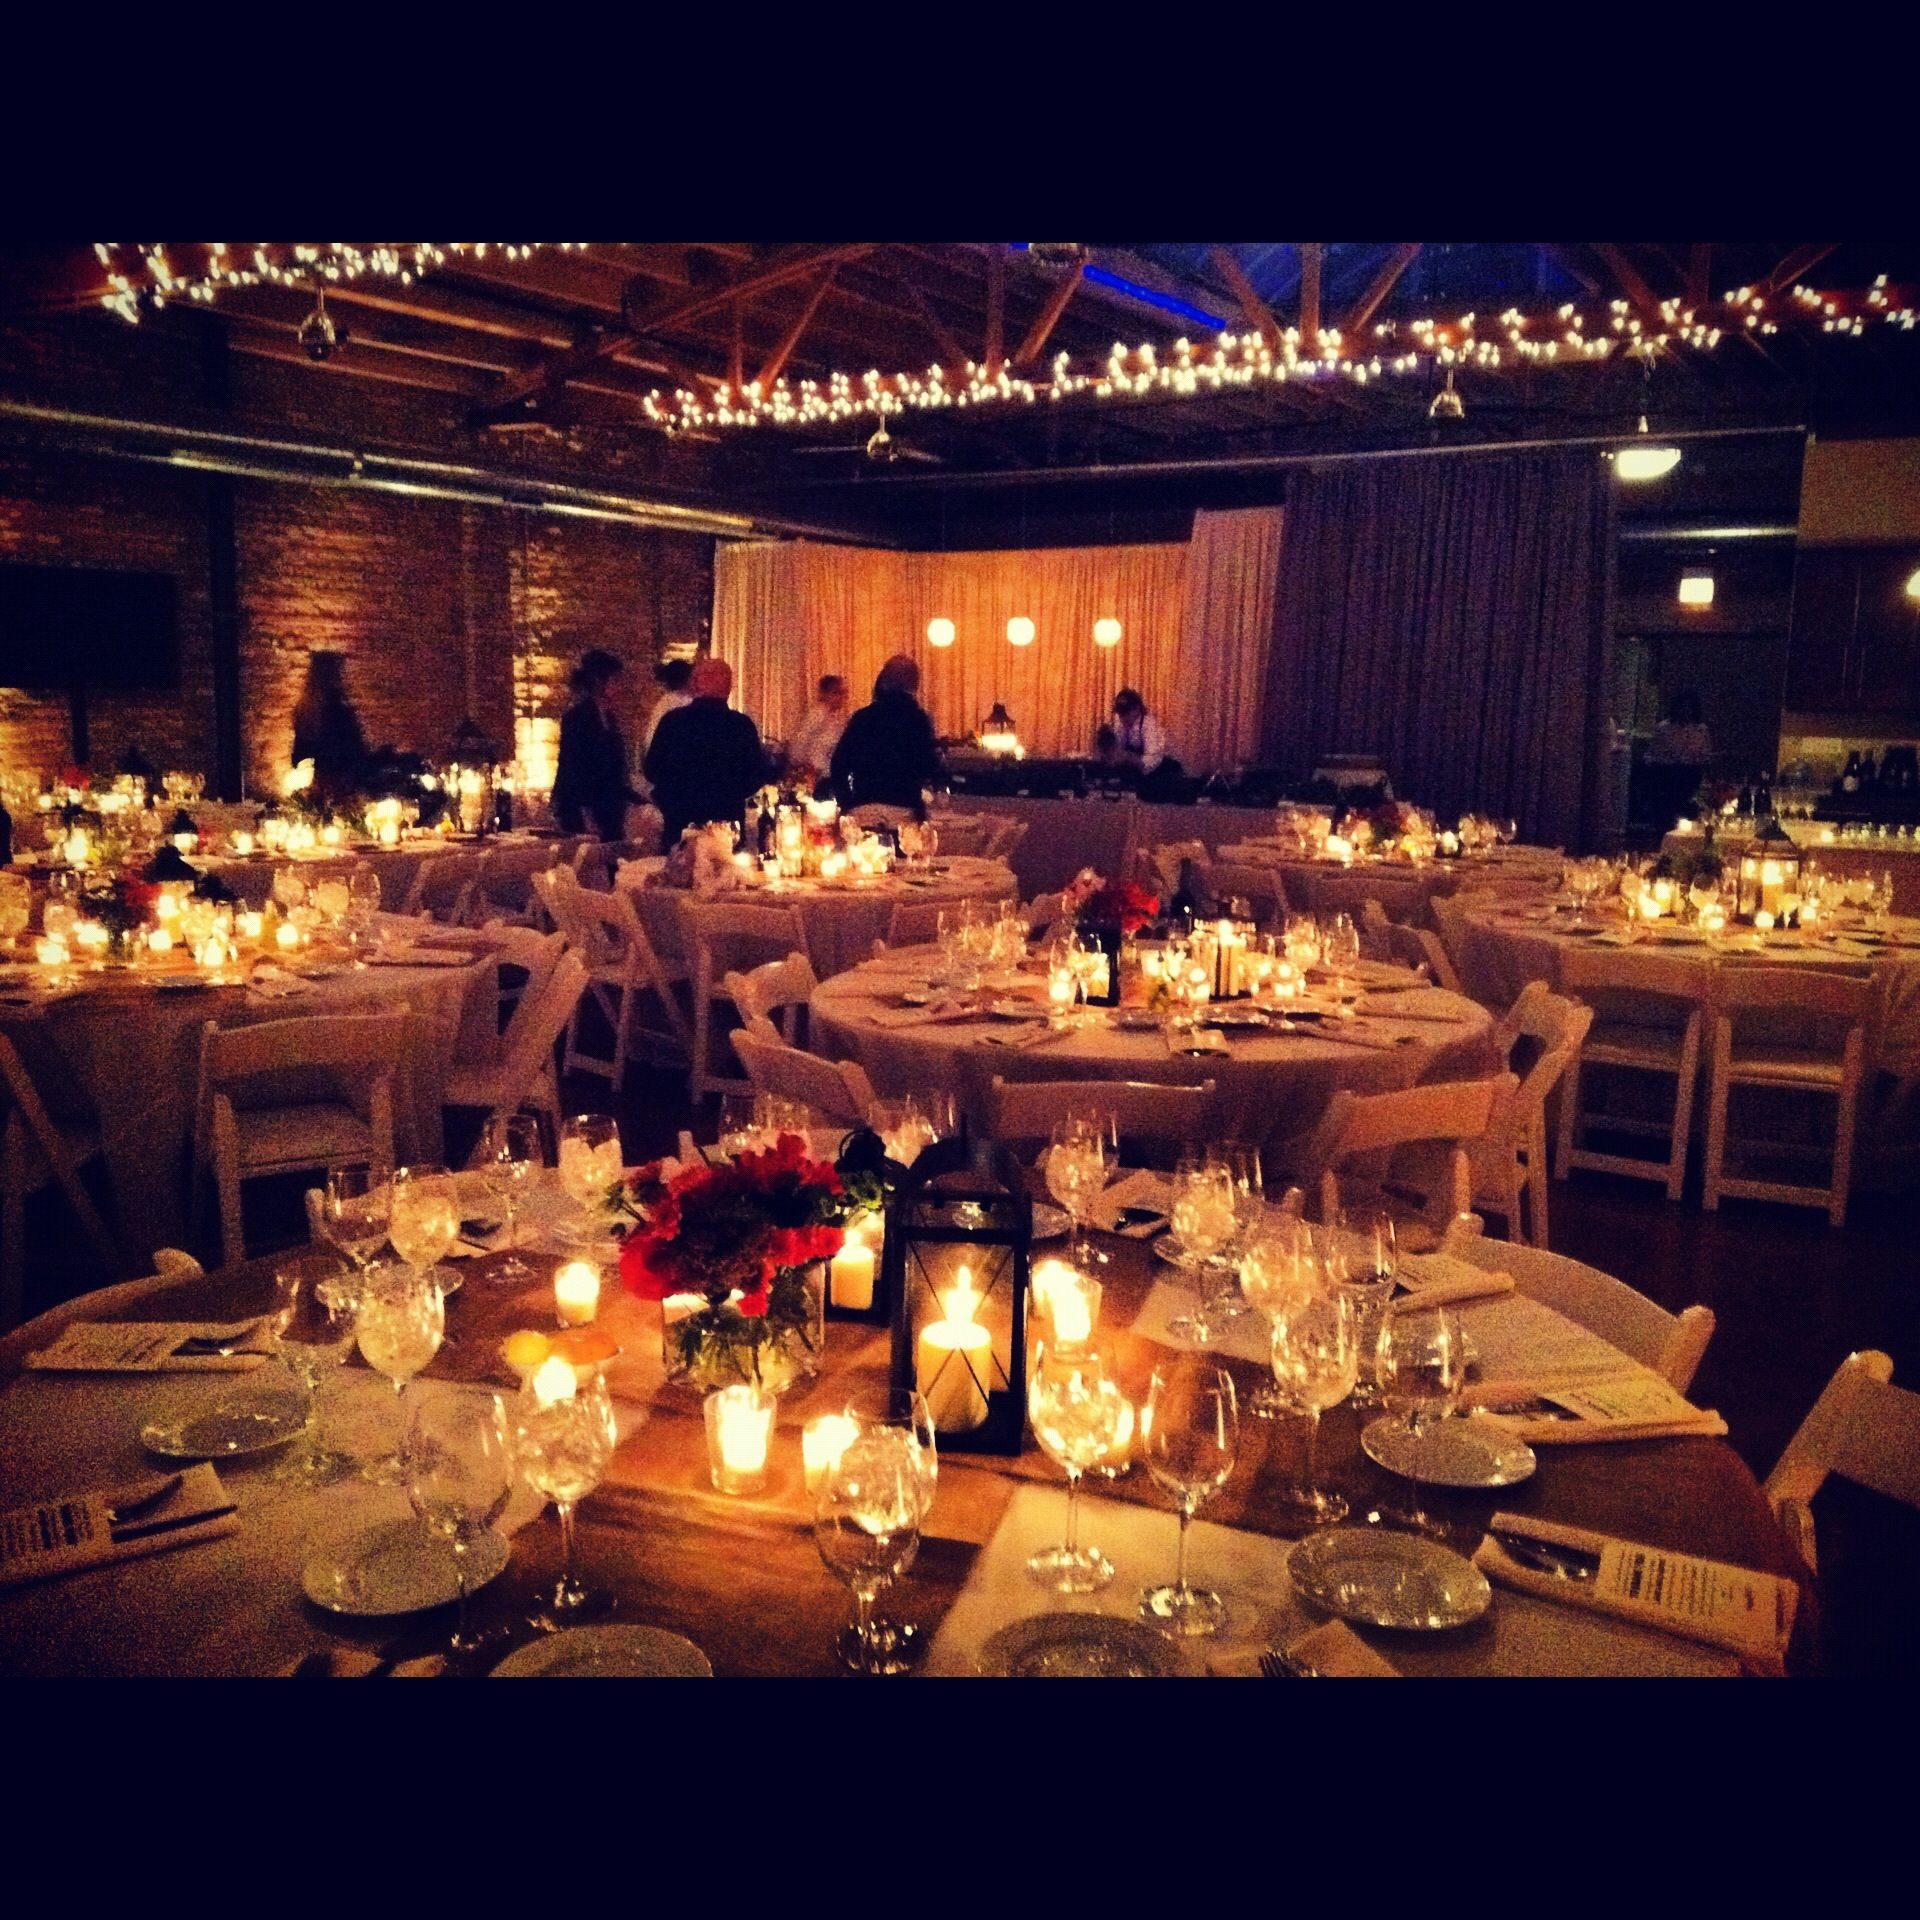 Wedding At Loft On Lake By Liven It Up Events, Event